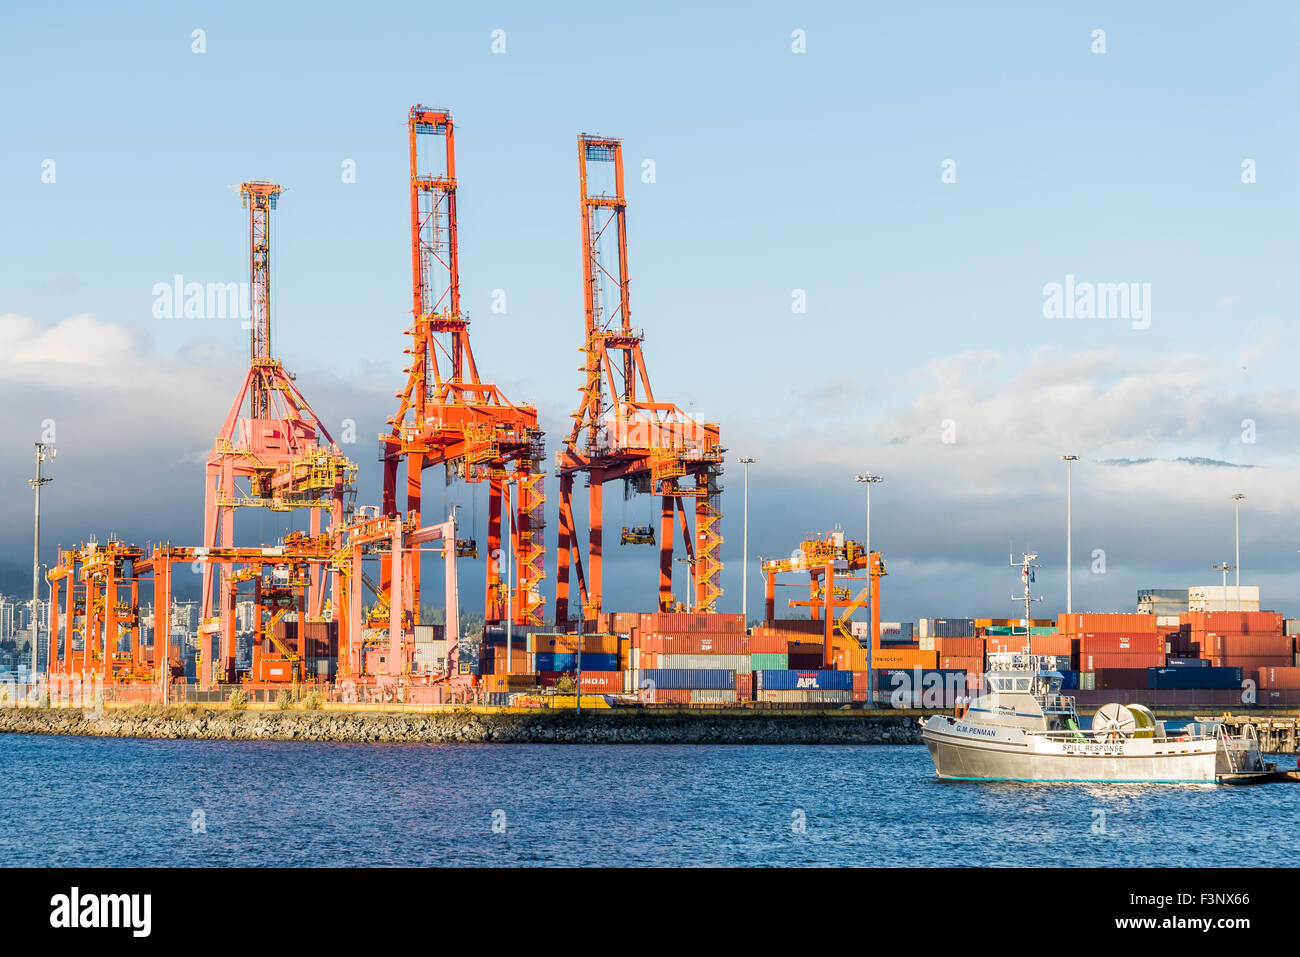 G.M. Enman, oil spill response vessel, Port of Vancouver, British Columbia, Canada - Stock Image